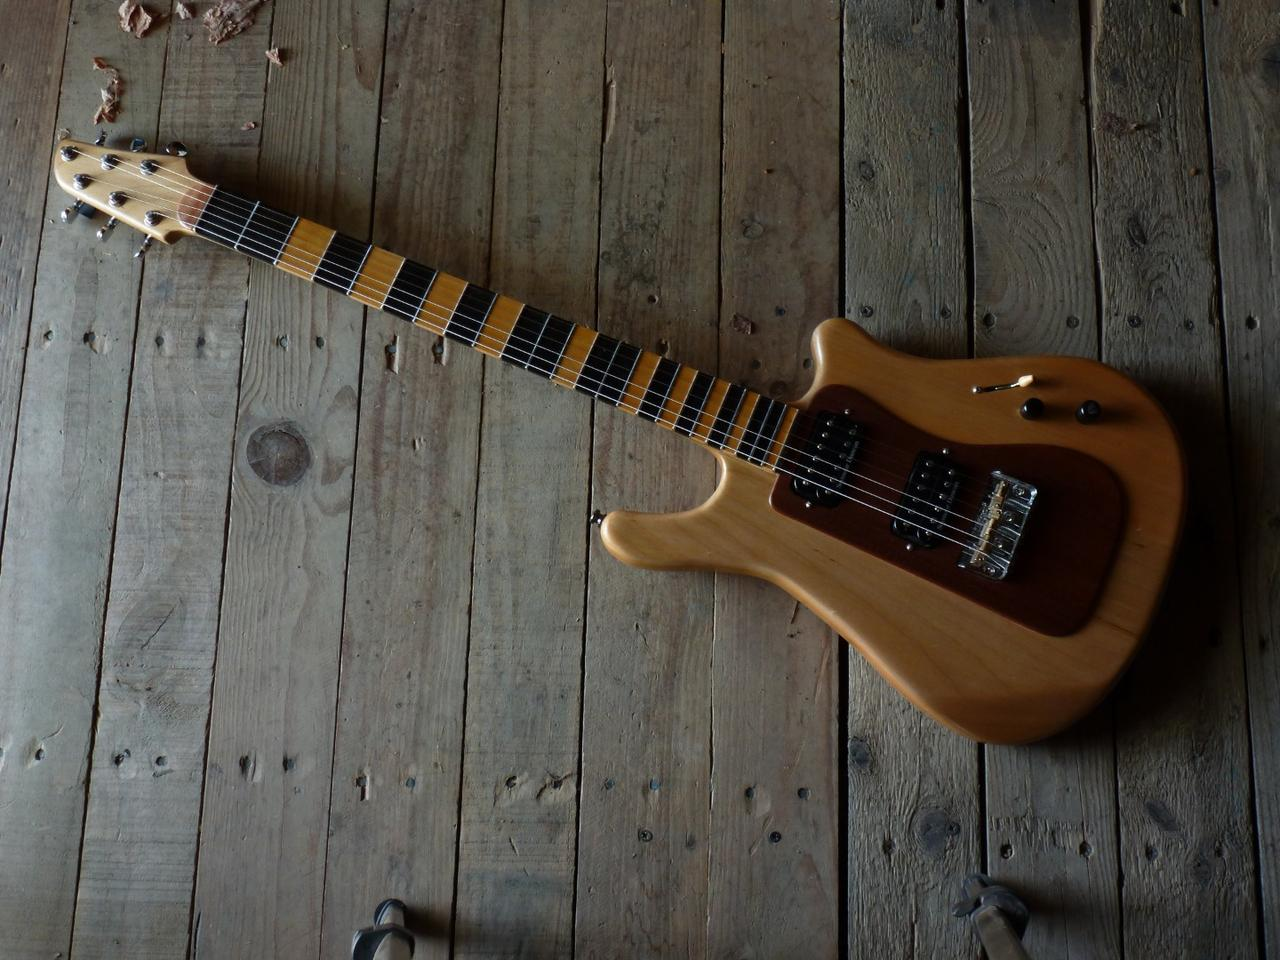 From the top, the prototype Subfretboard guitar looks pretty much like any other